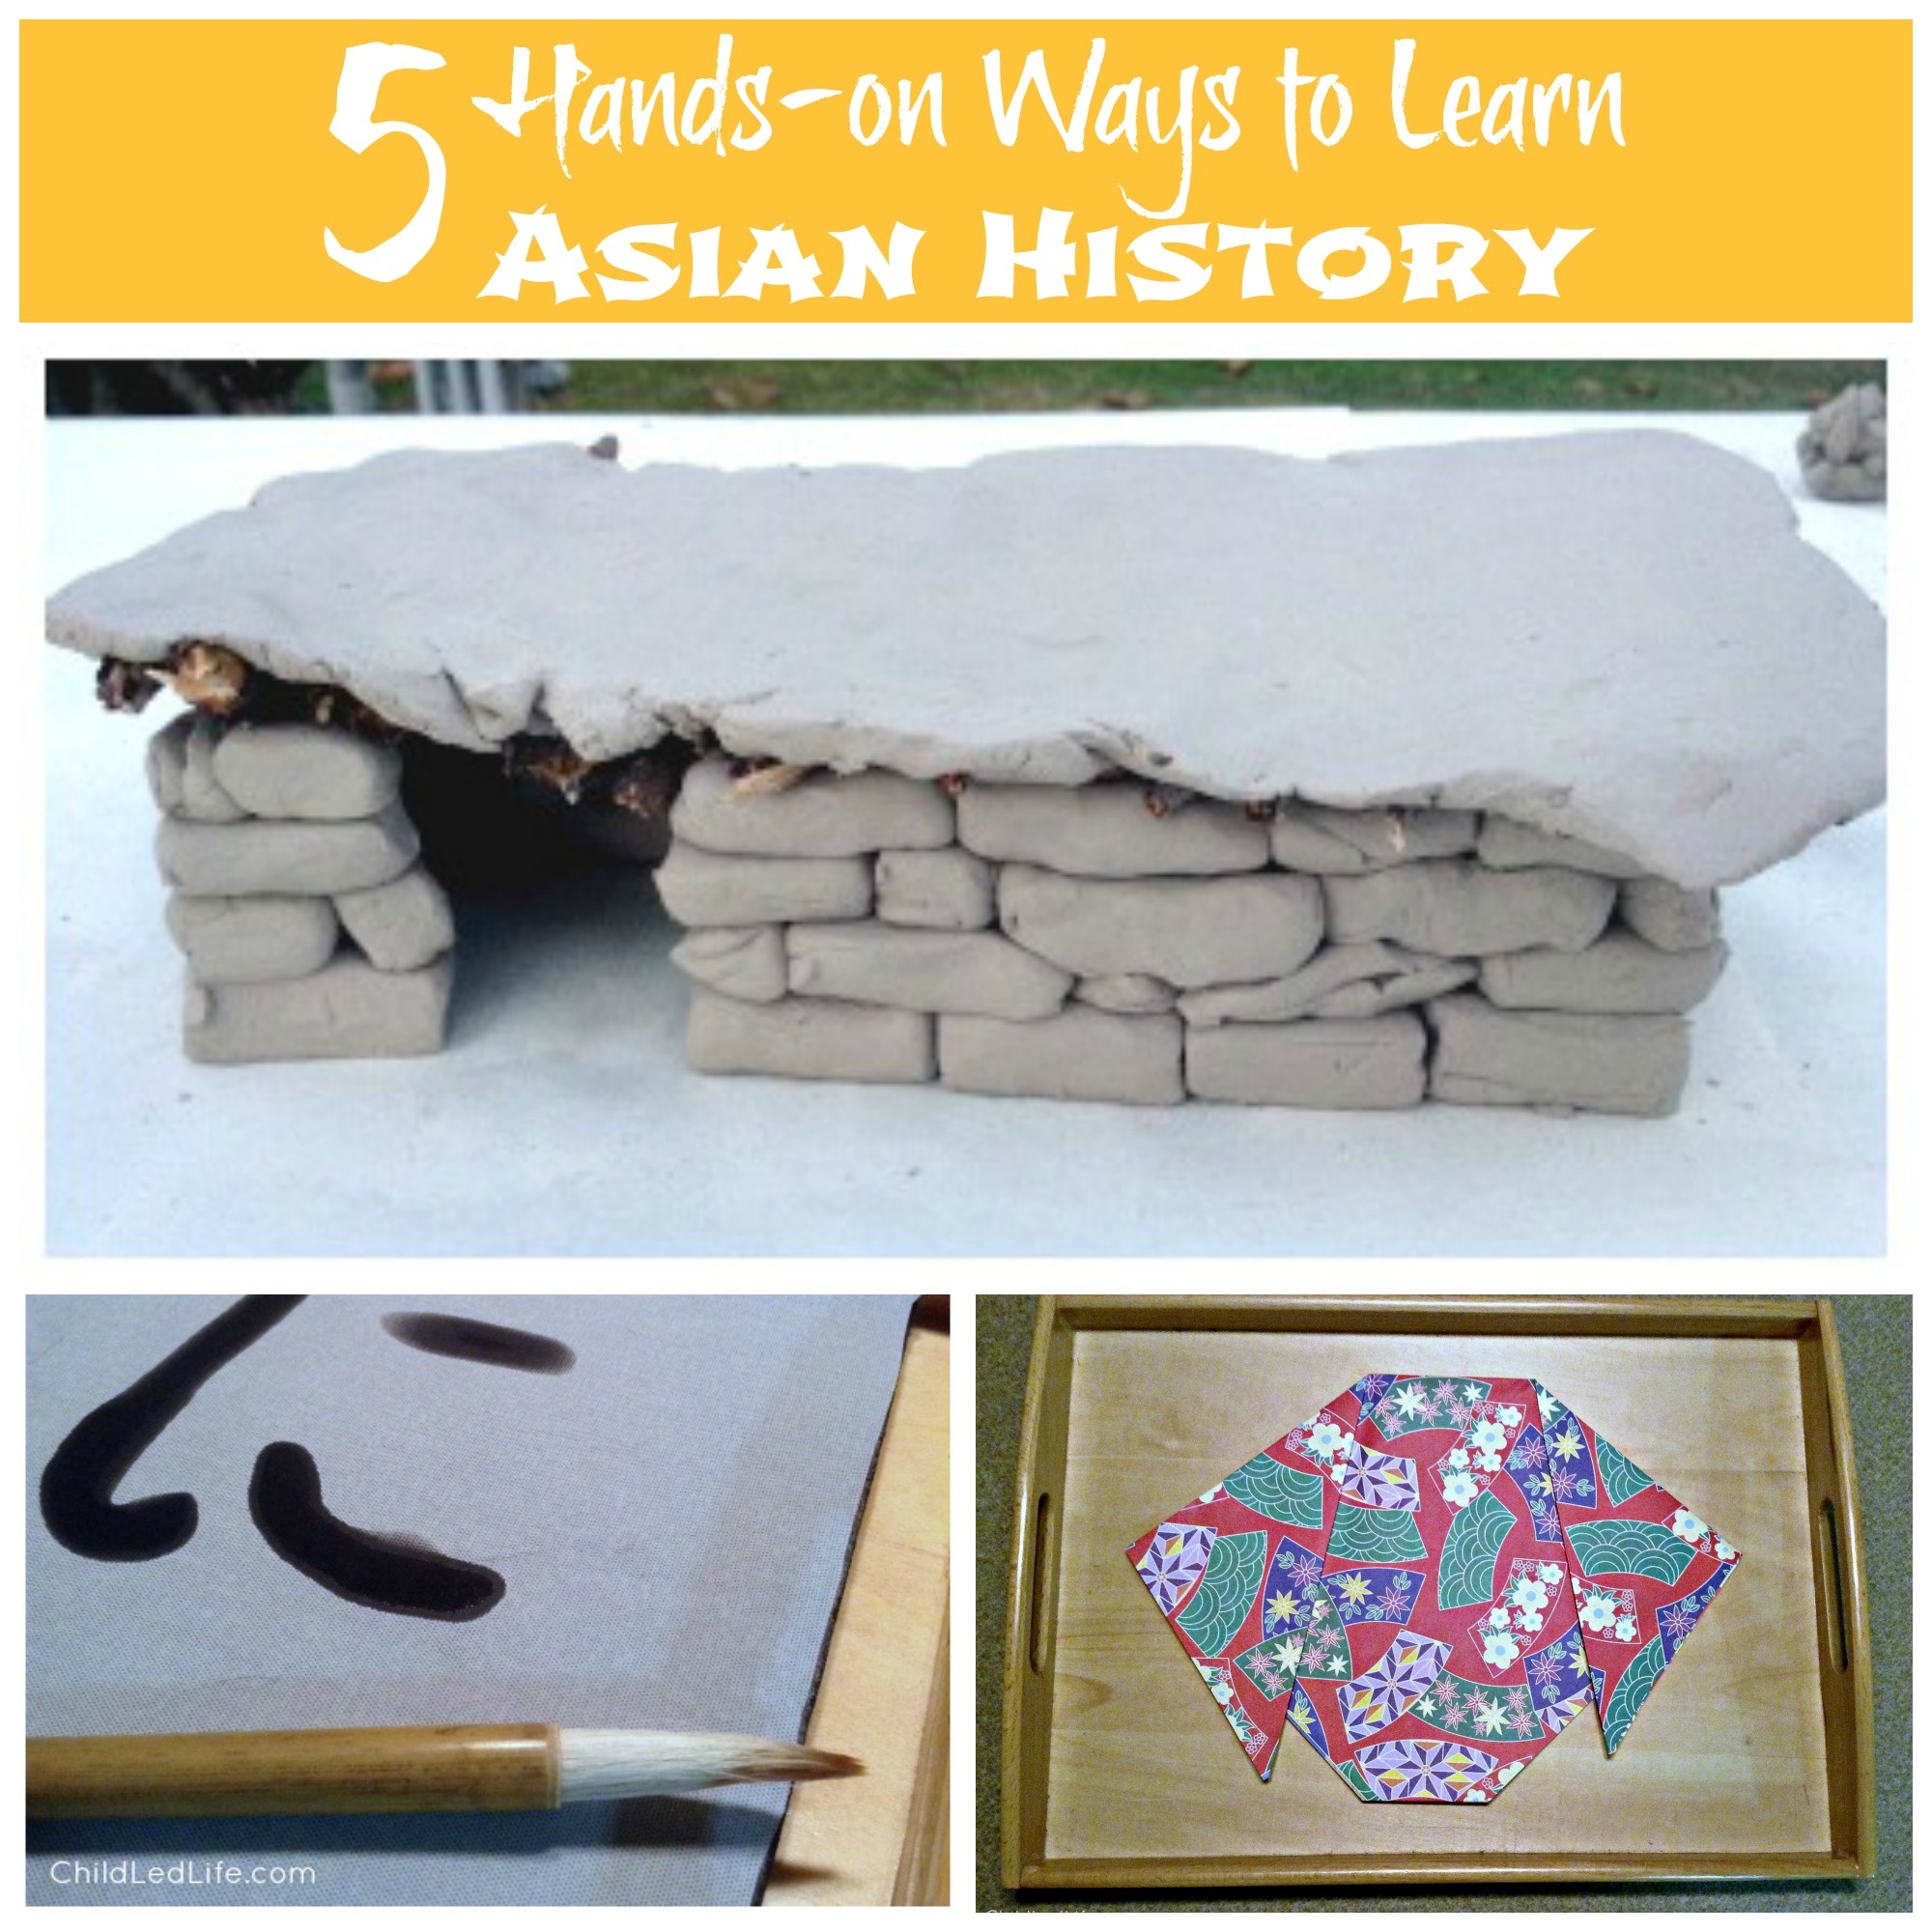 5 Ways to Learn Asian History